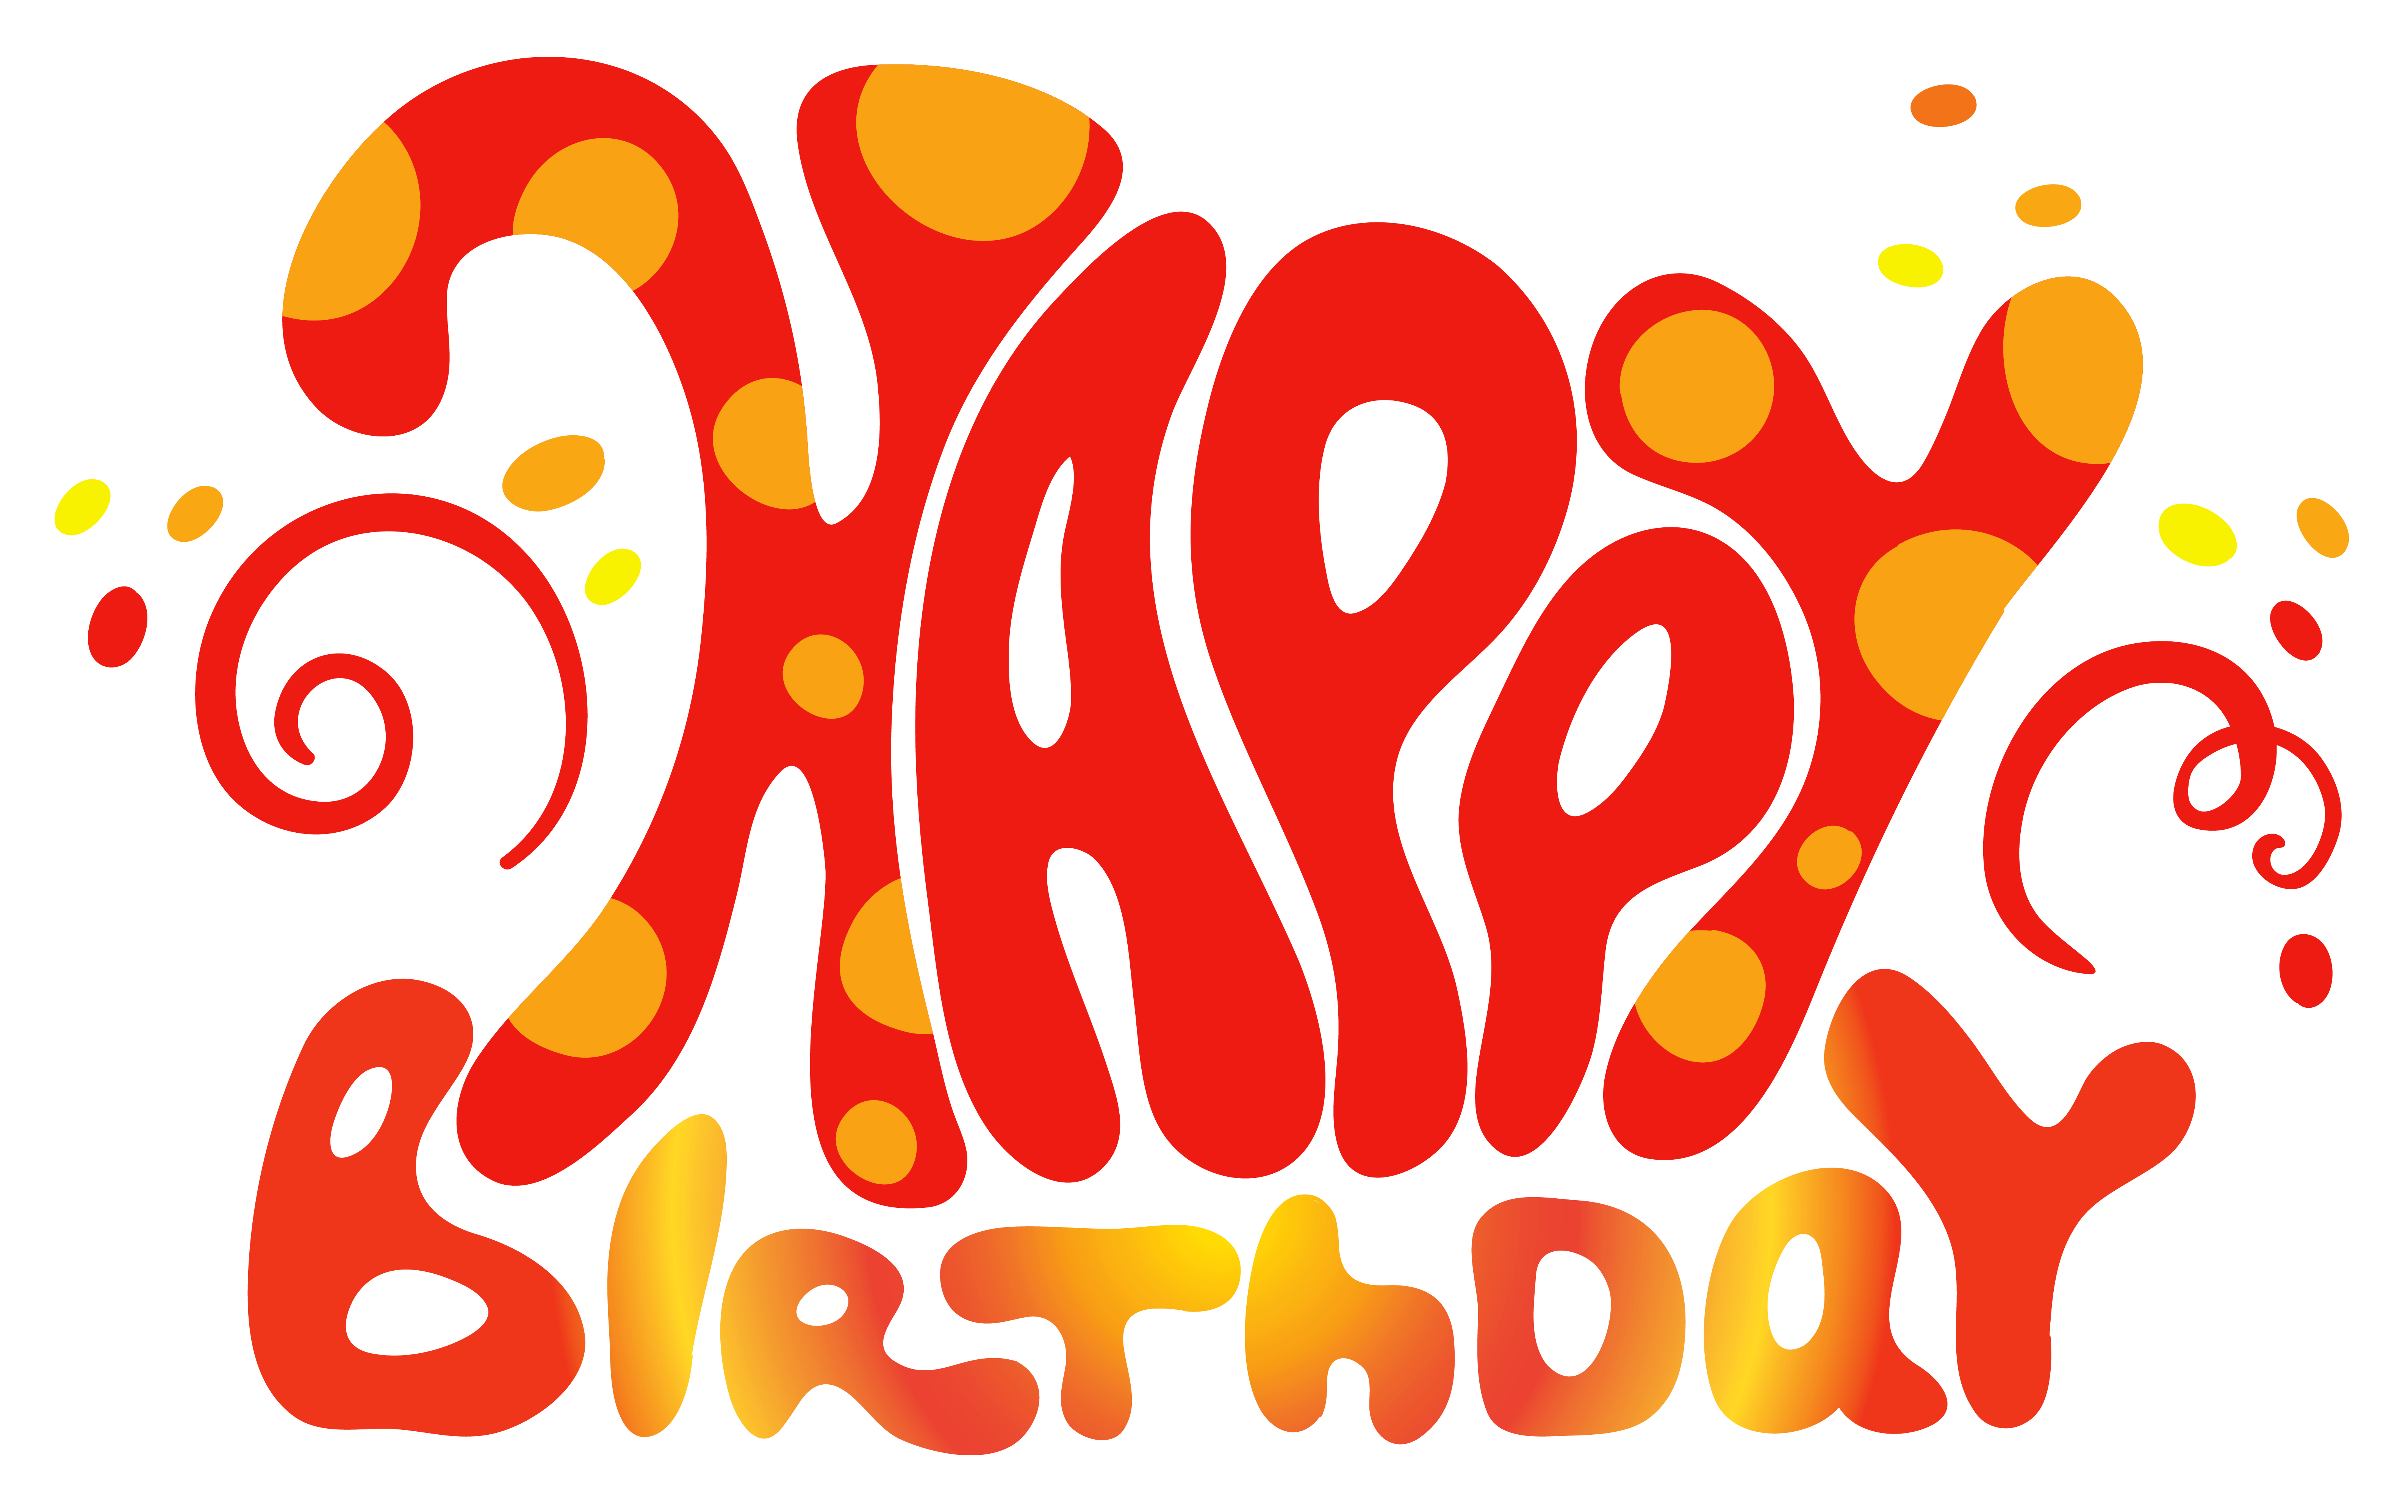 Happy Birthday Typography Png ~ Red cute happy birthday text png clipart pinterest